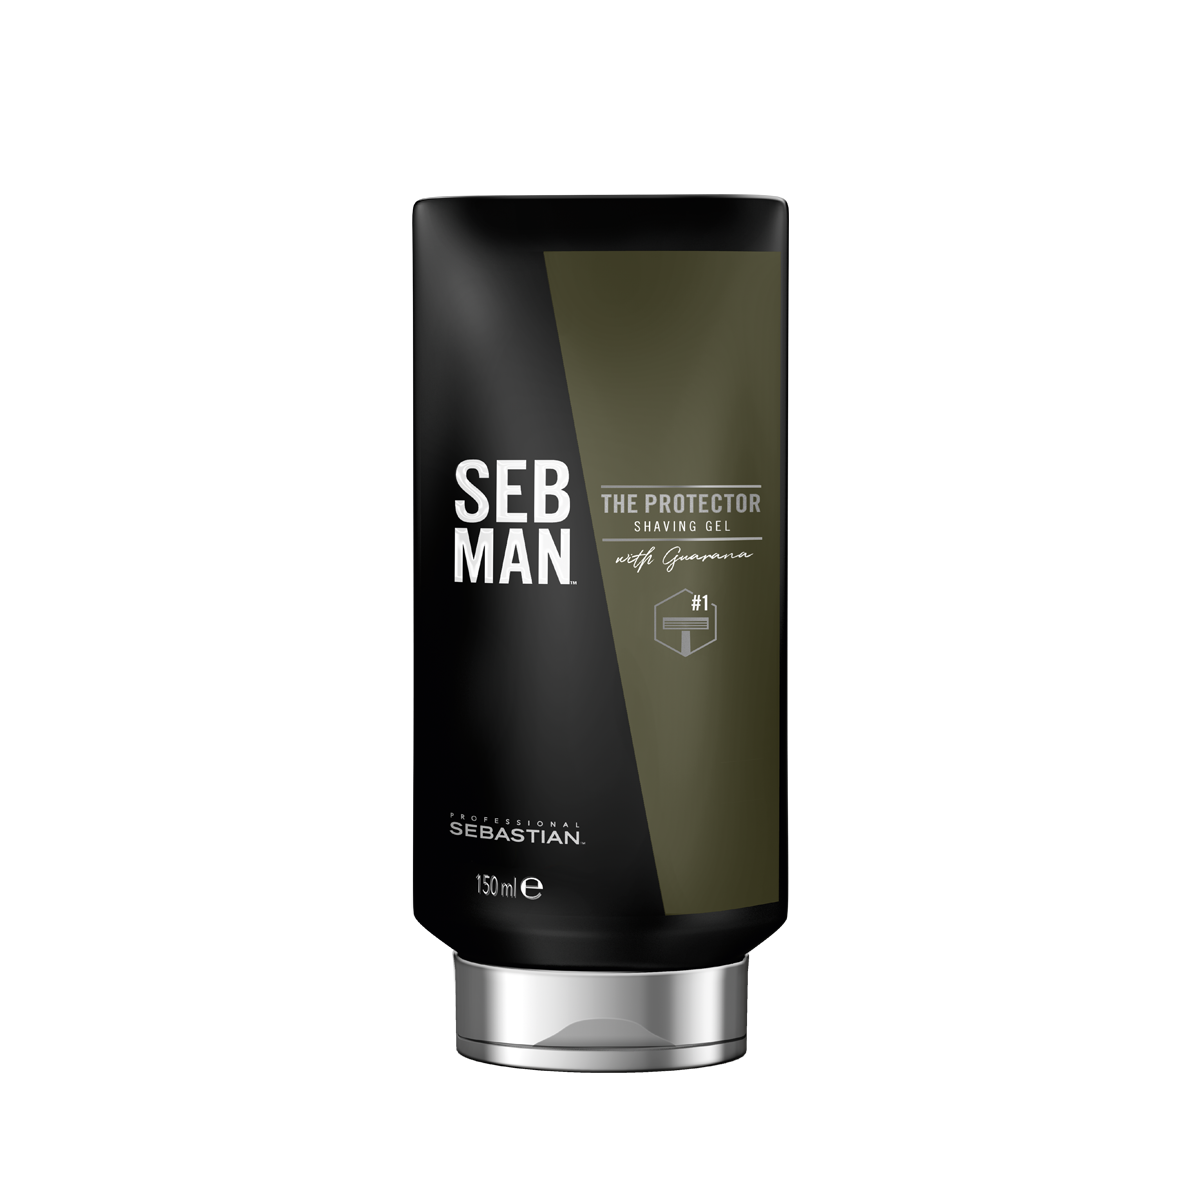 SEB MAN The Protector Shaving Cream